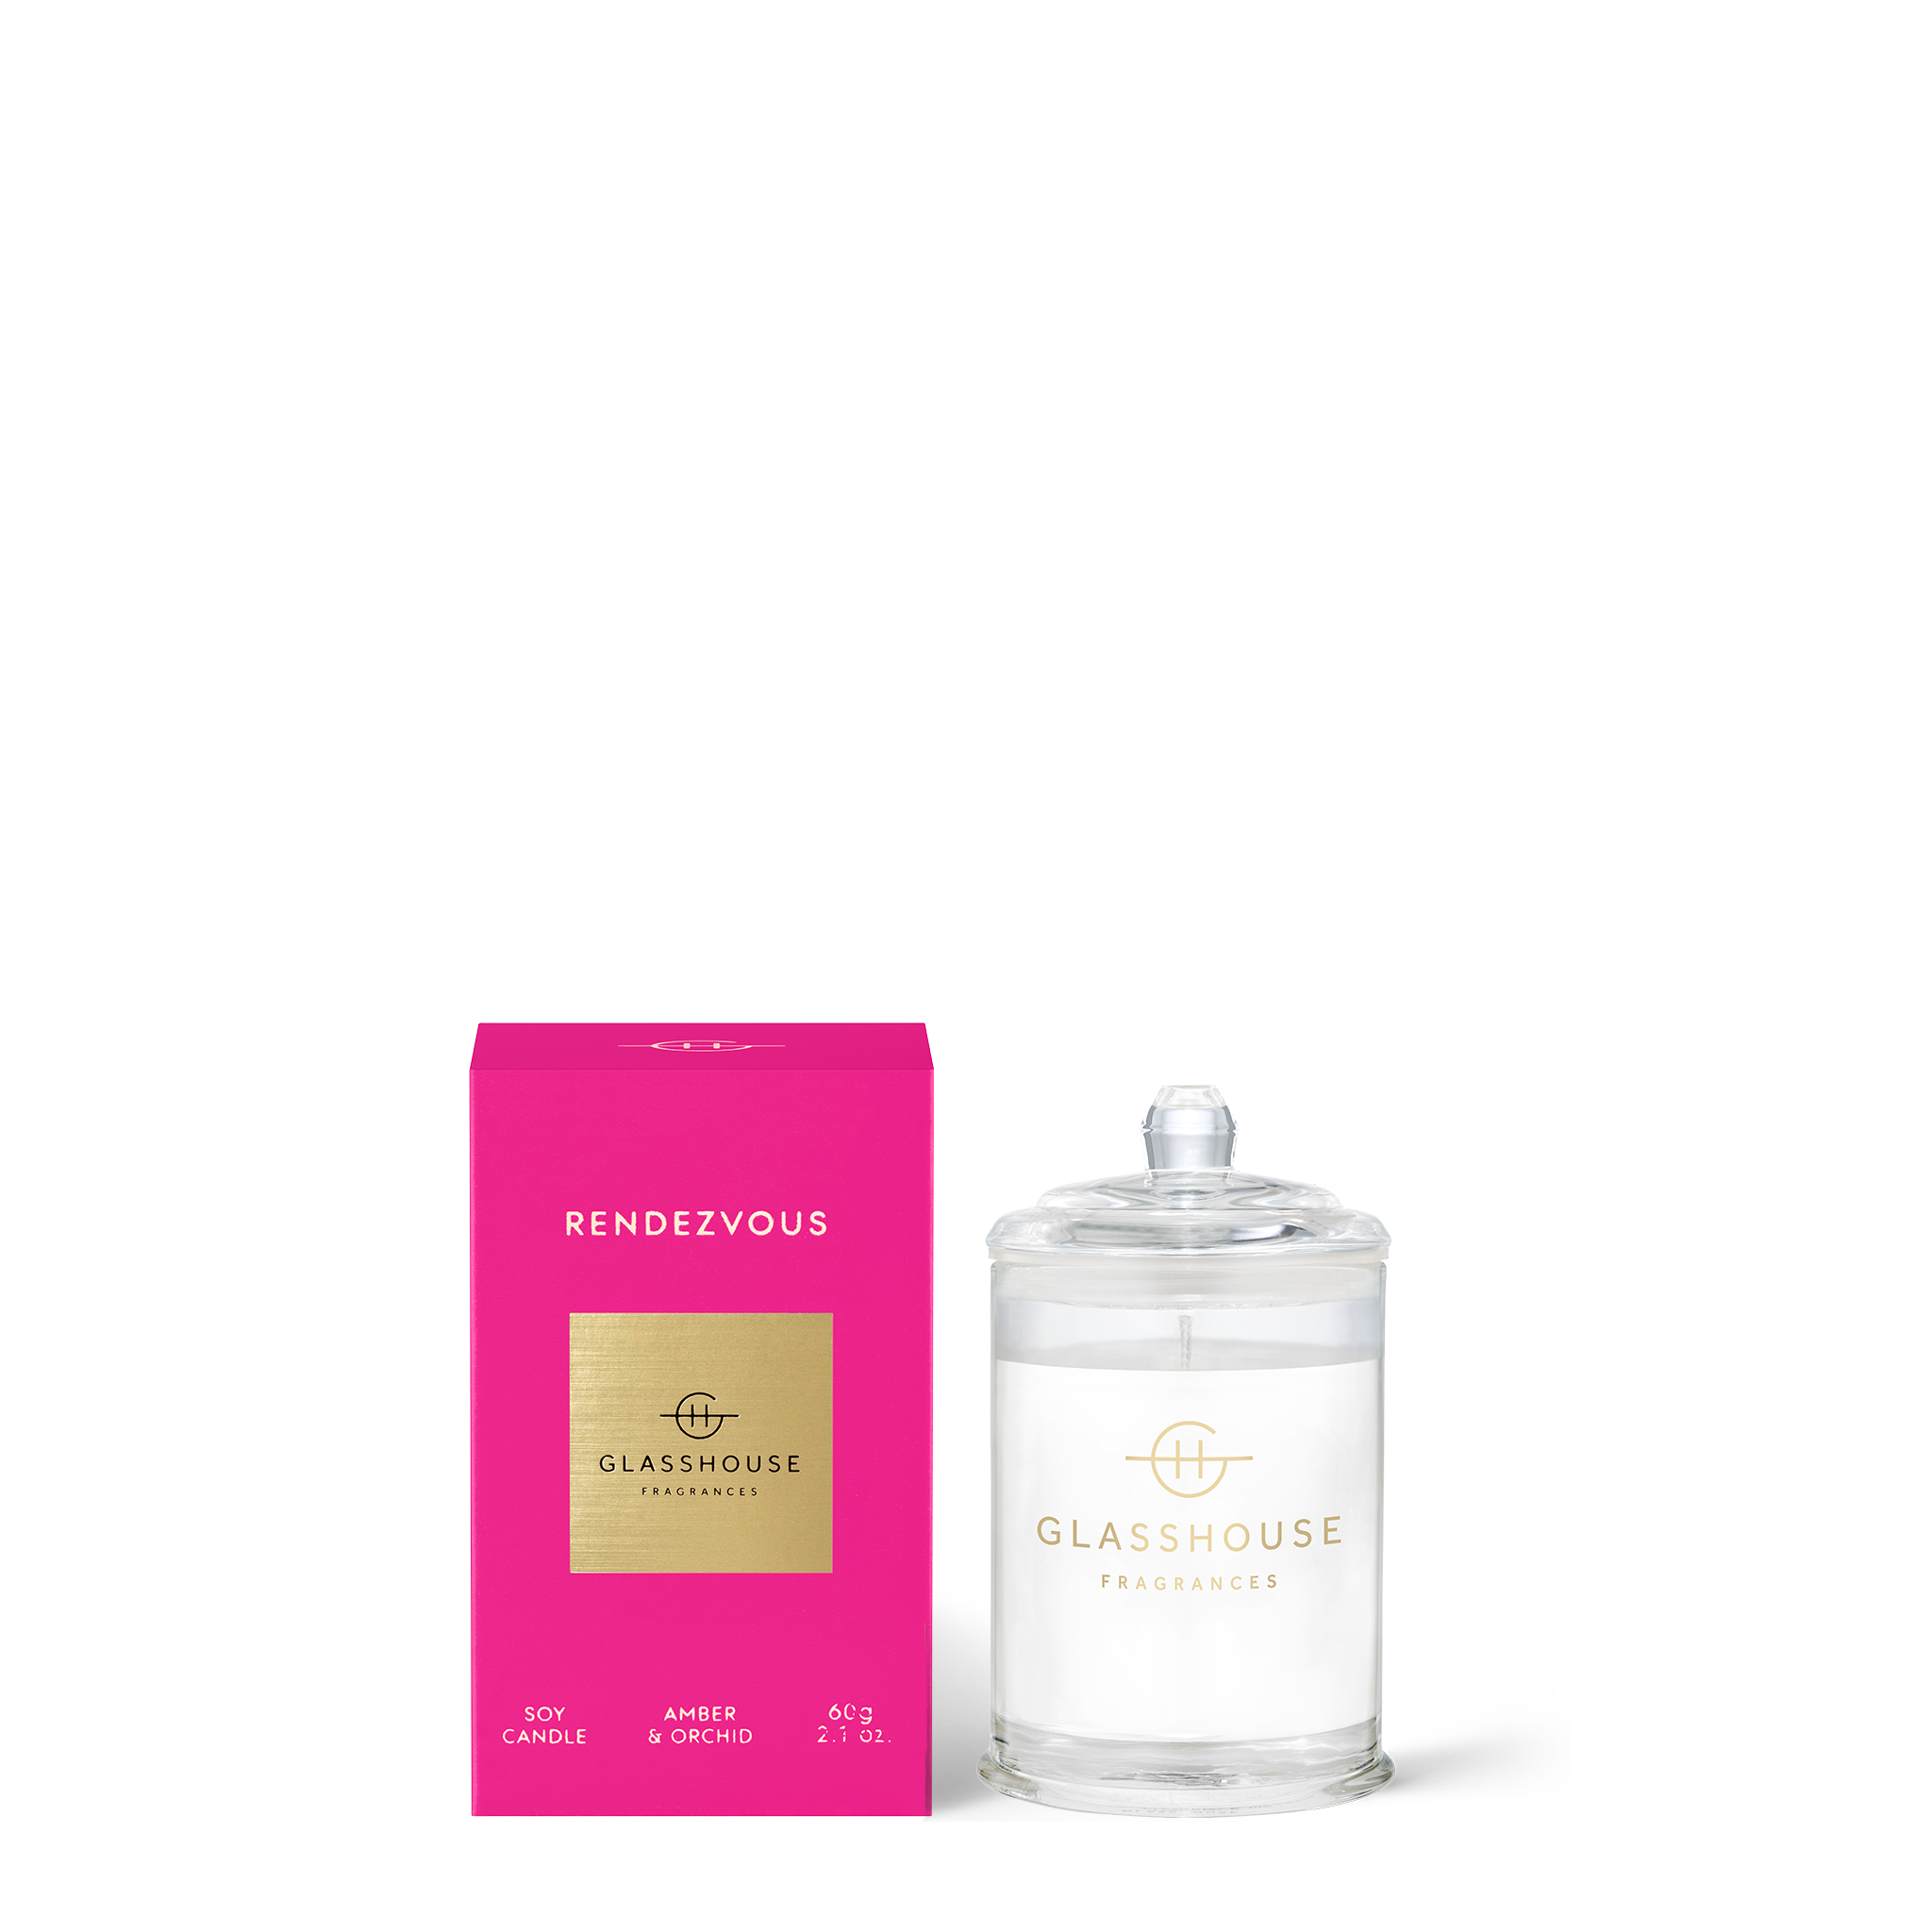 GLASSHOUSE FRAGRANCES Rendezvous 60g Candle